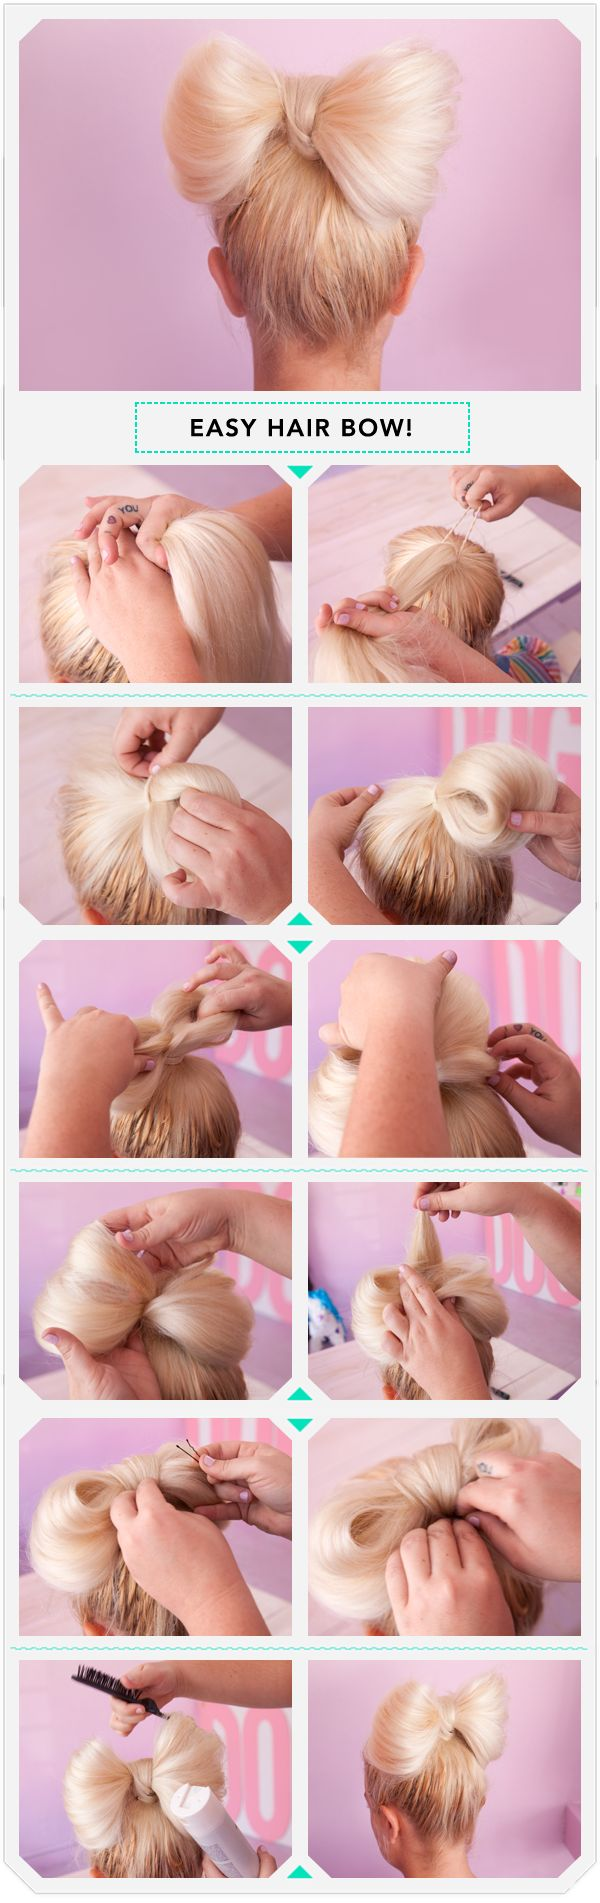 Hair Bow Inspiration